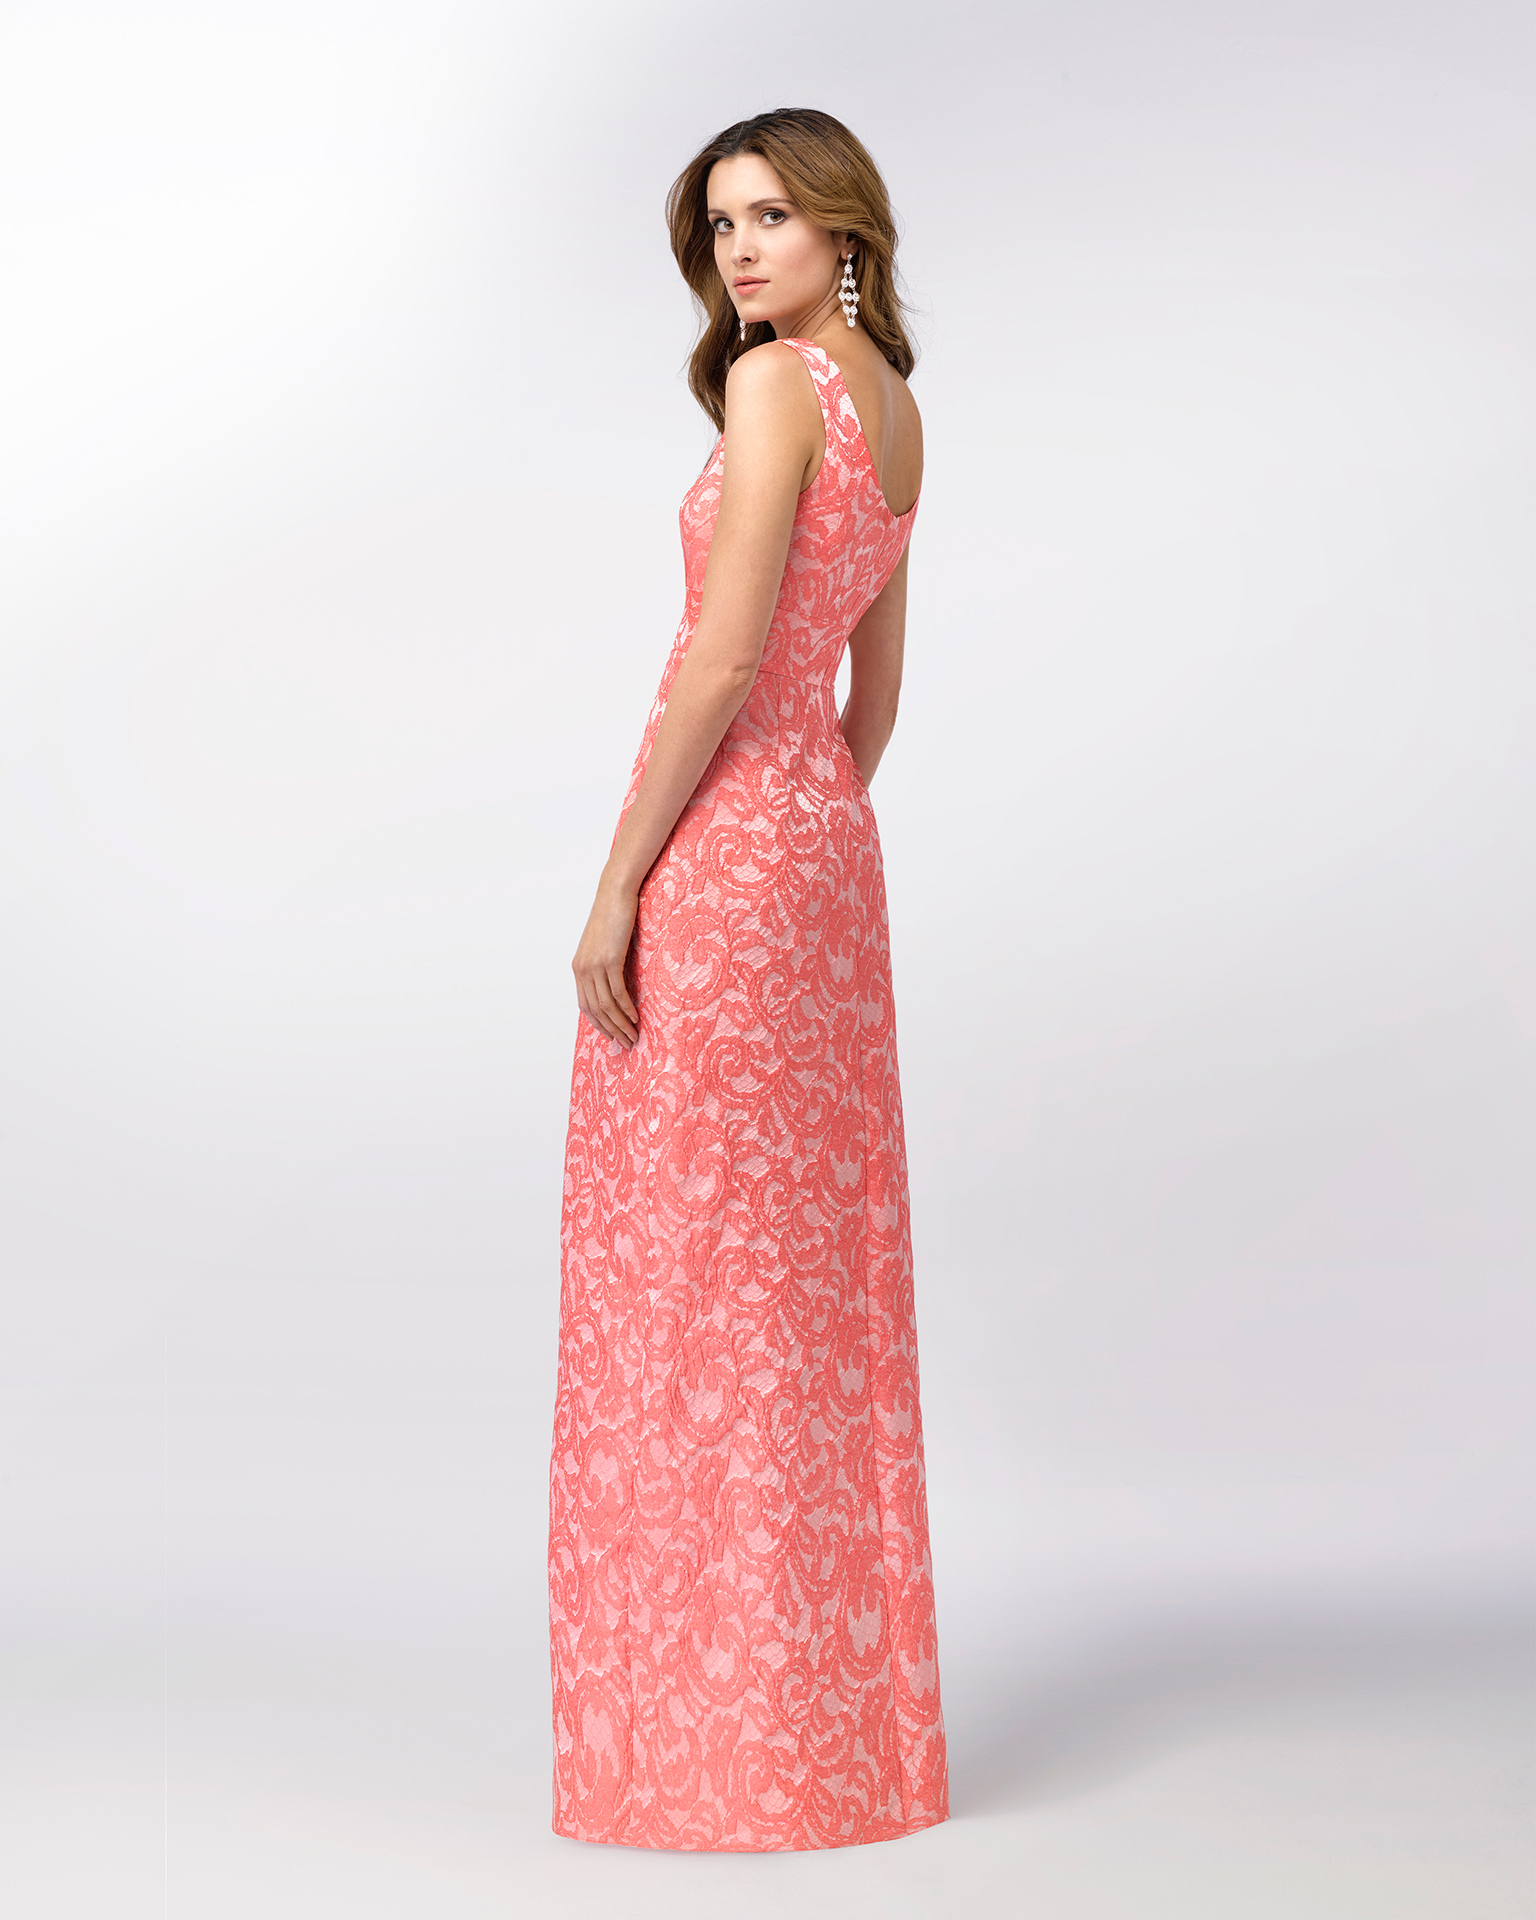 Long sleeveless brocade cocktail dress with structured full skirt. Available in pink and blue. 2018 FIESTA AIRE BARCELONA Collection.